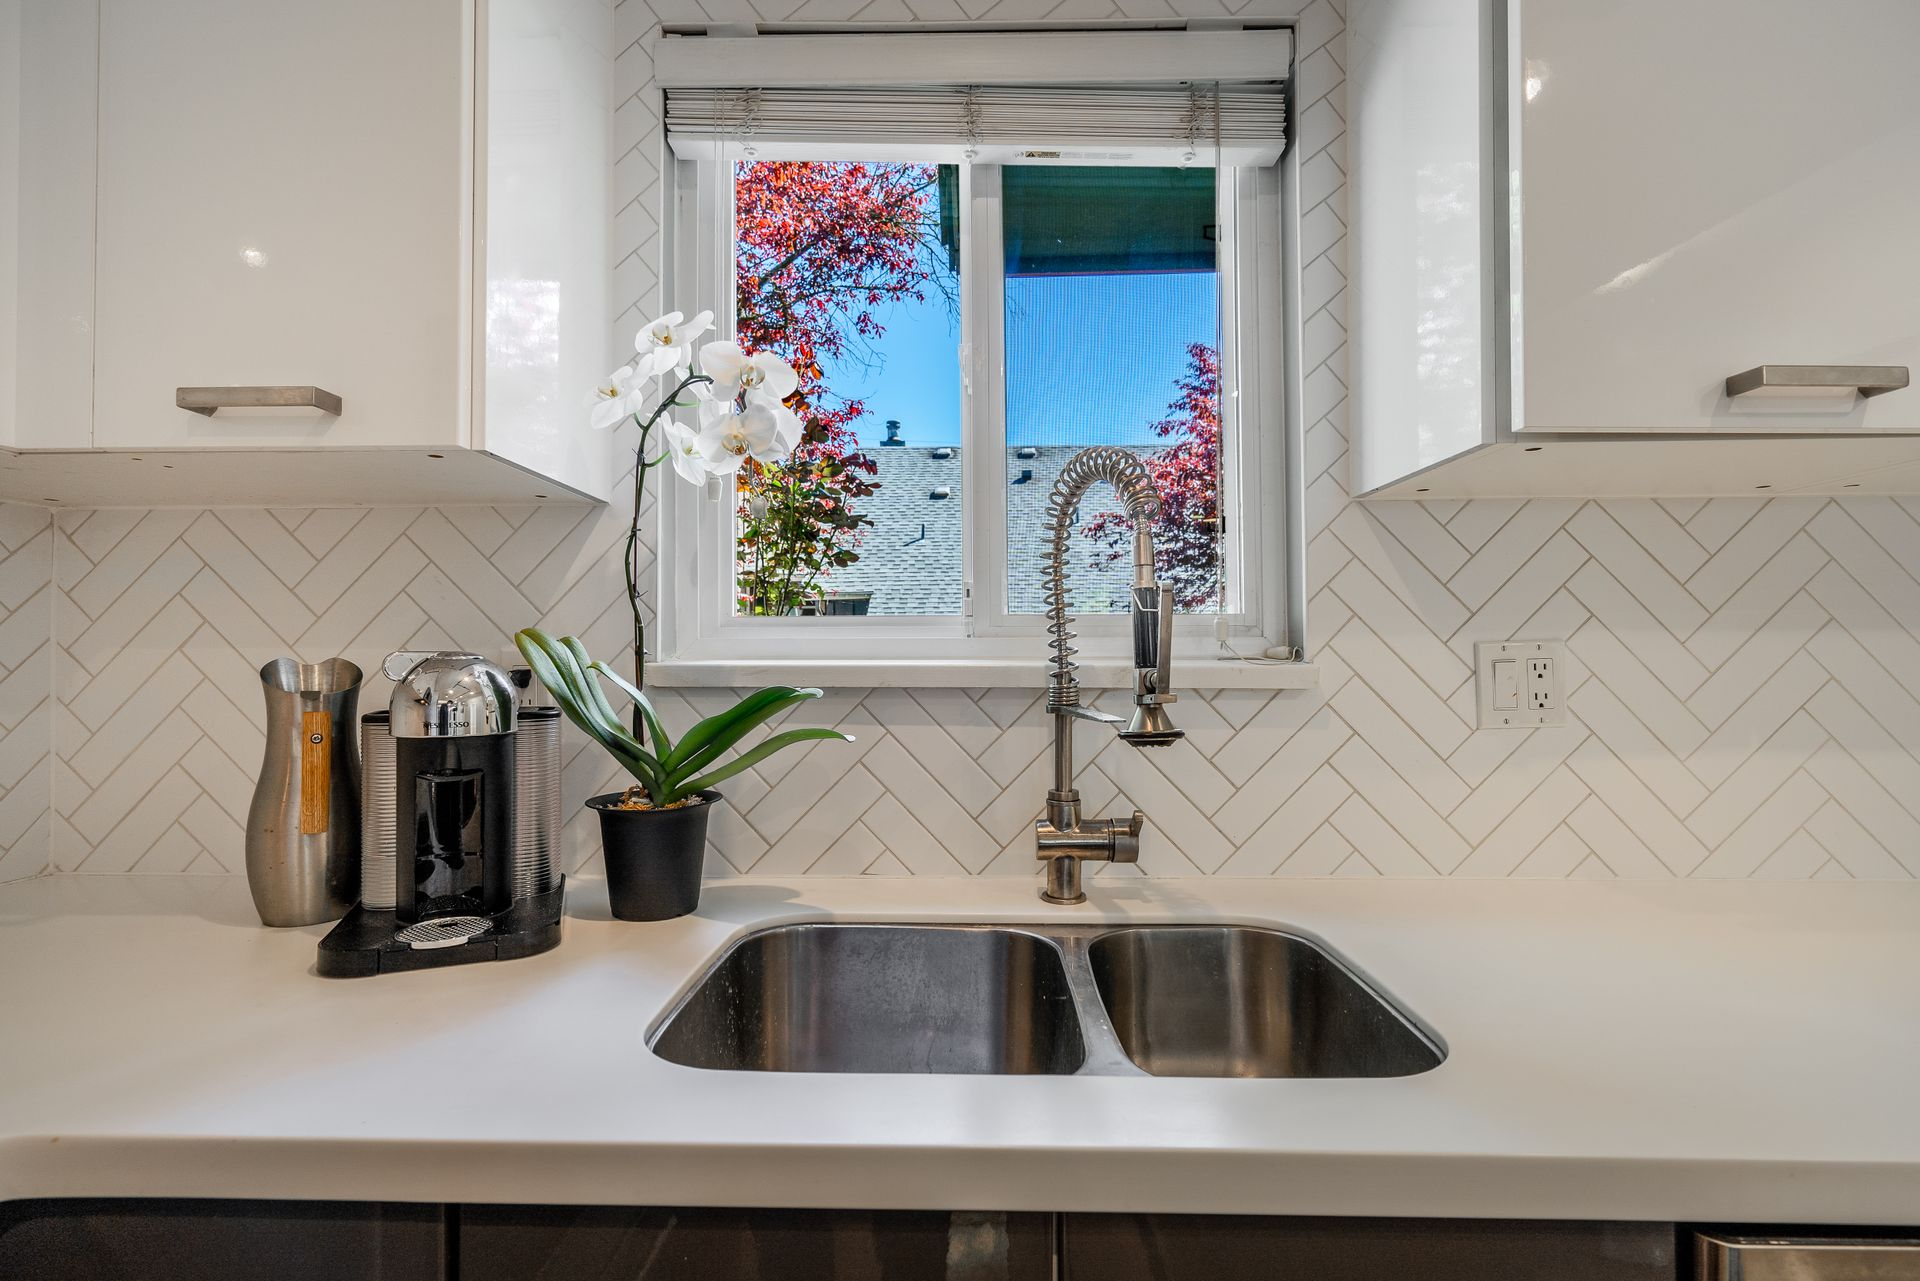 unit-17-900-17th-street-w-north-vancouver-13 at 17 - 900 W 17th Street, Mosquito Creek, North Vancouver